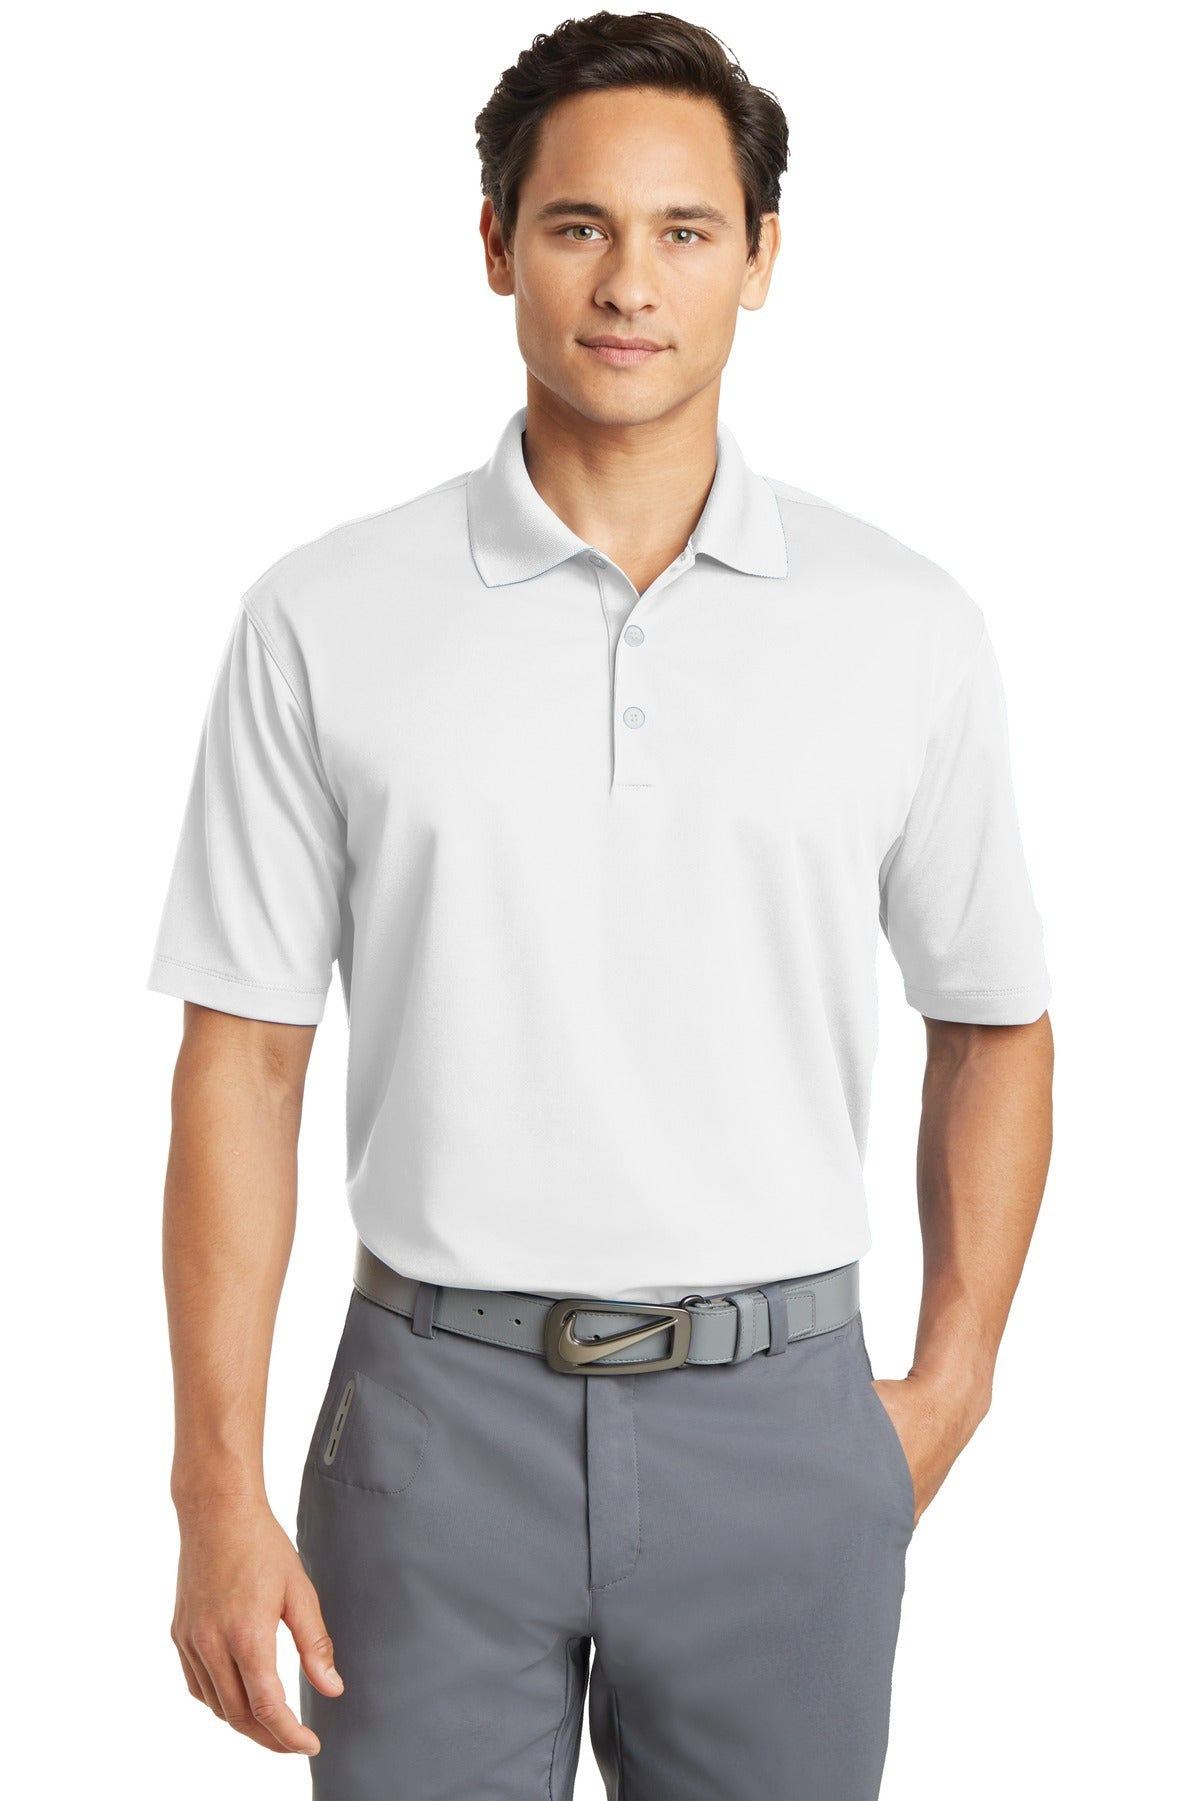 White Nike Tall Dri-FIT Micro Pique Polo.